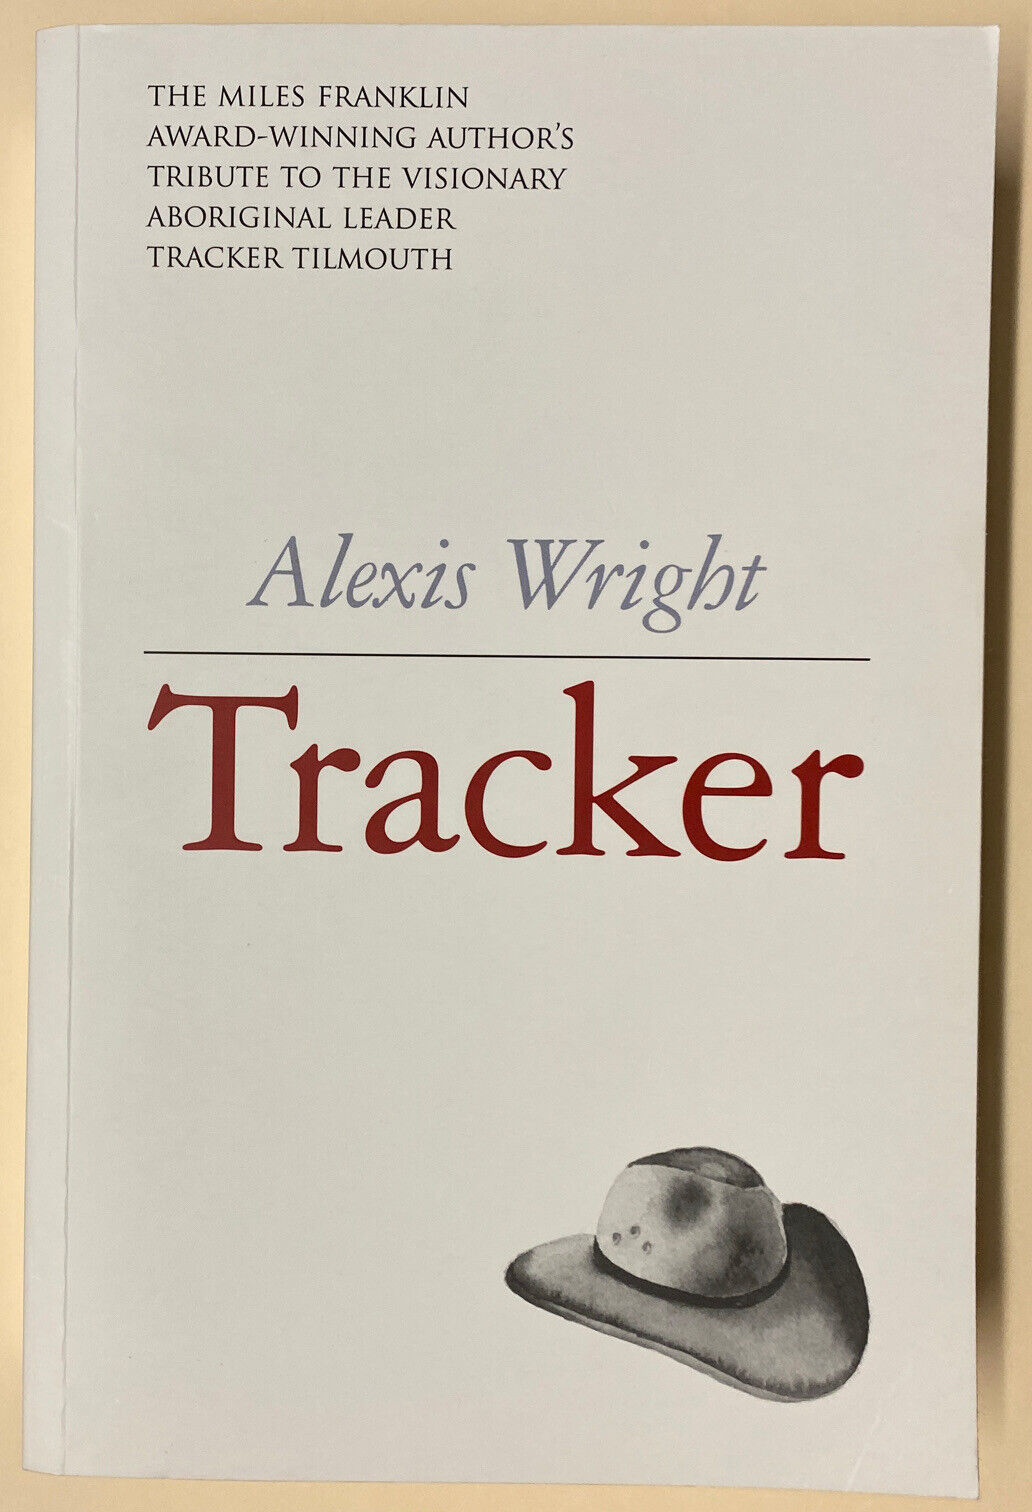 Image 1 - Tracker by Alexis Wright Tribute To Visionary Aboriginal Leader Tracker Tilmouth